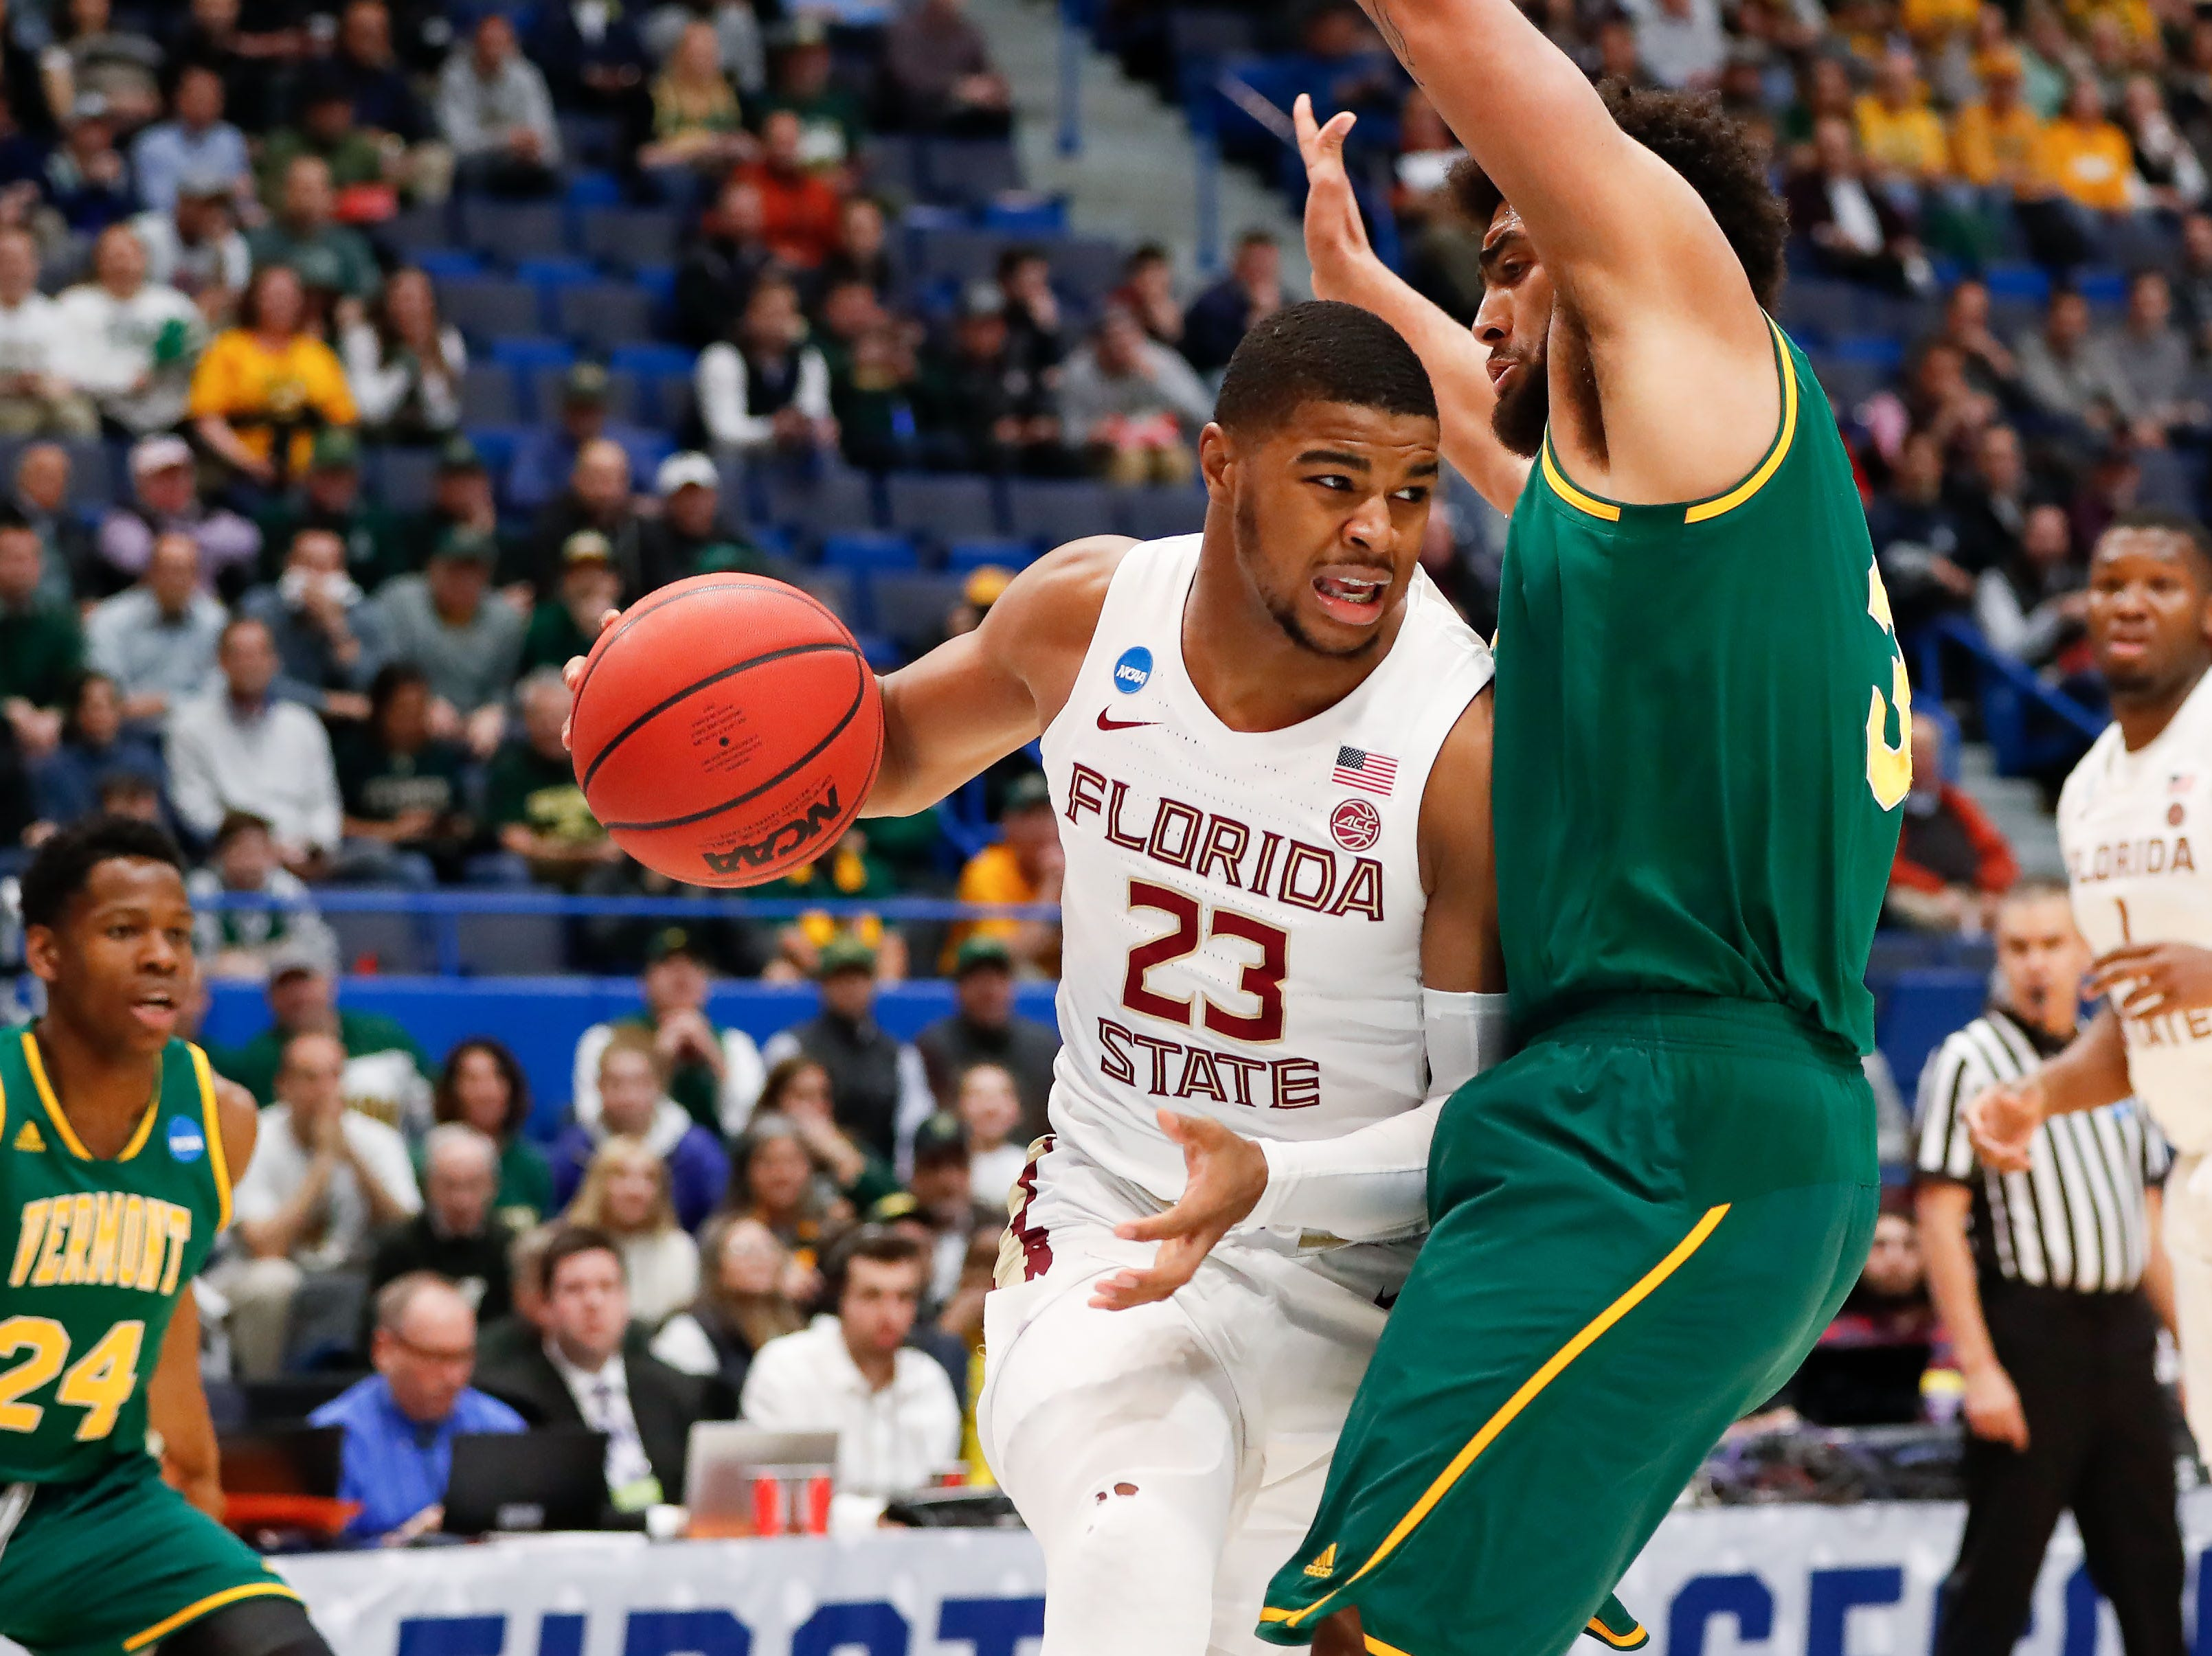 Mar 21, 2019; Hartford, CT, USA; Florida State Seminoles guard M.J. Walker (23) drives to the basket against Vermont Catamounts forward Anthony Lamb (3) during the first half of a game in the first round of the 2019 NCAA Tournament at XL Center. Mandatory Credit: David Butler II-USA TODAY Sports